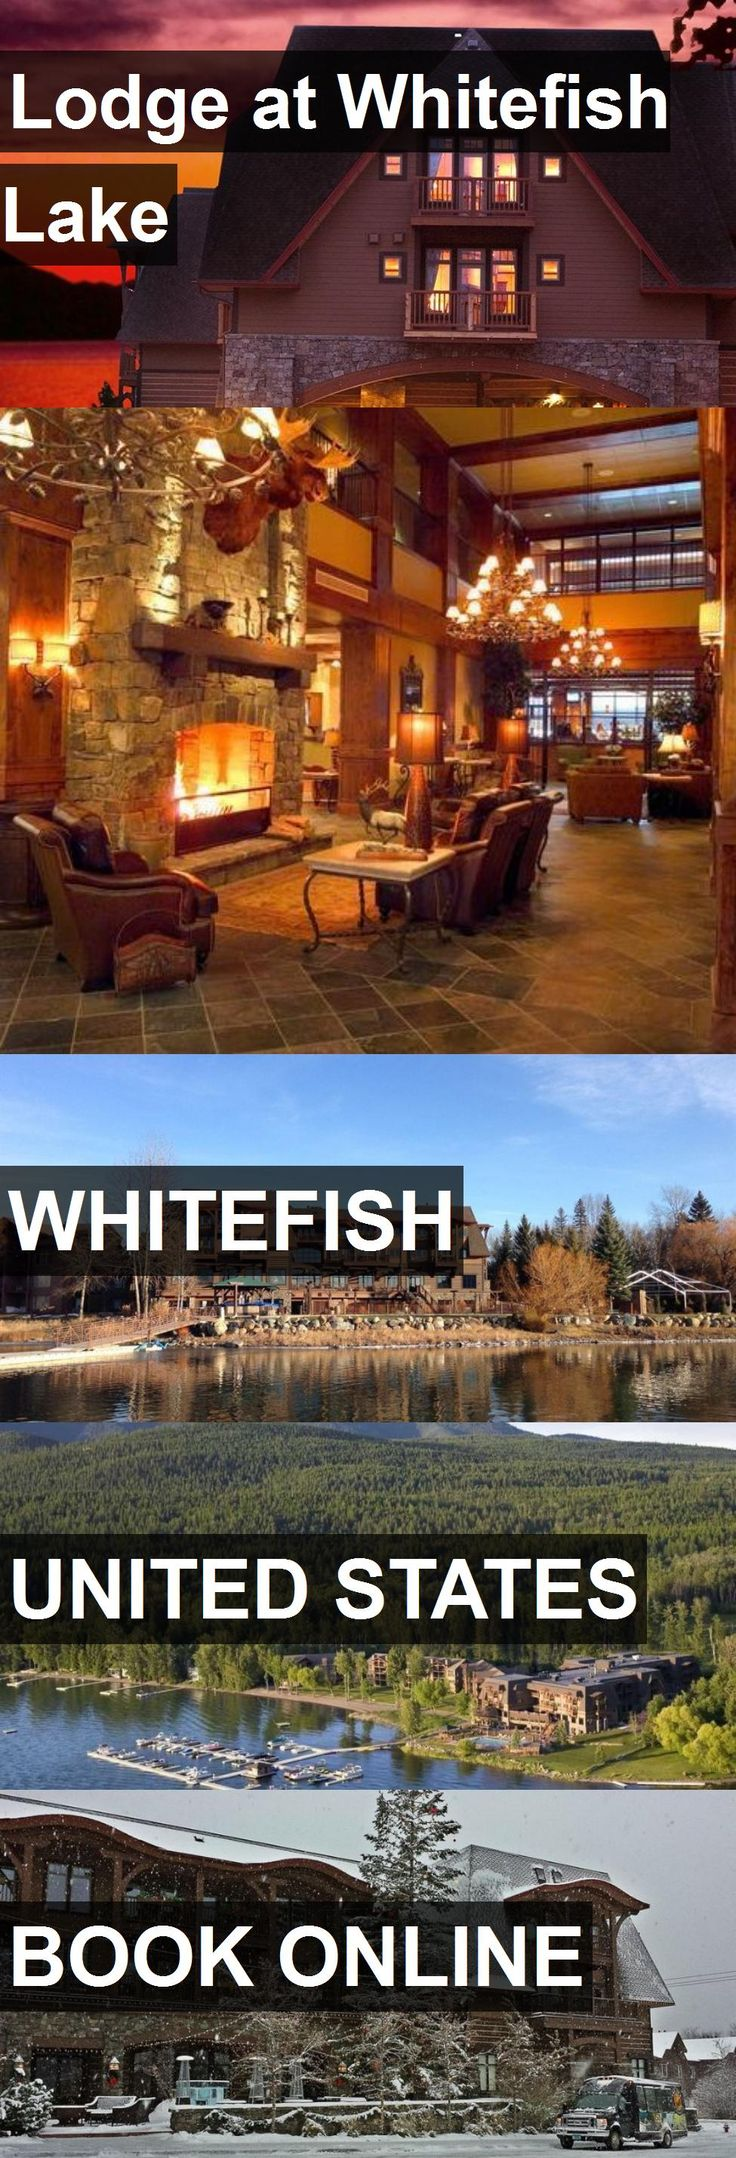 Hotel Lodge at Whitefish Lake in Whitefish, United States. For more information, photos, reviews and best prices please follow the link. #UnitedStates #Whitefish #LodgeatWhitefishLake #hotel #travel #vacation